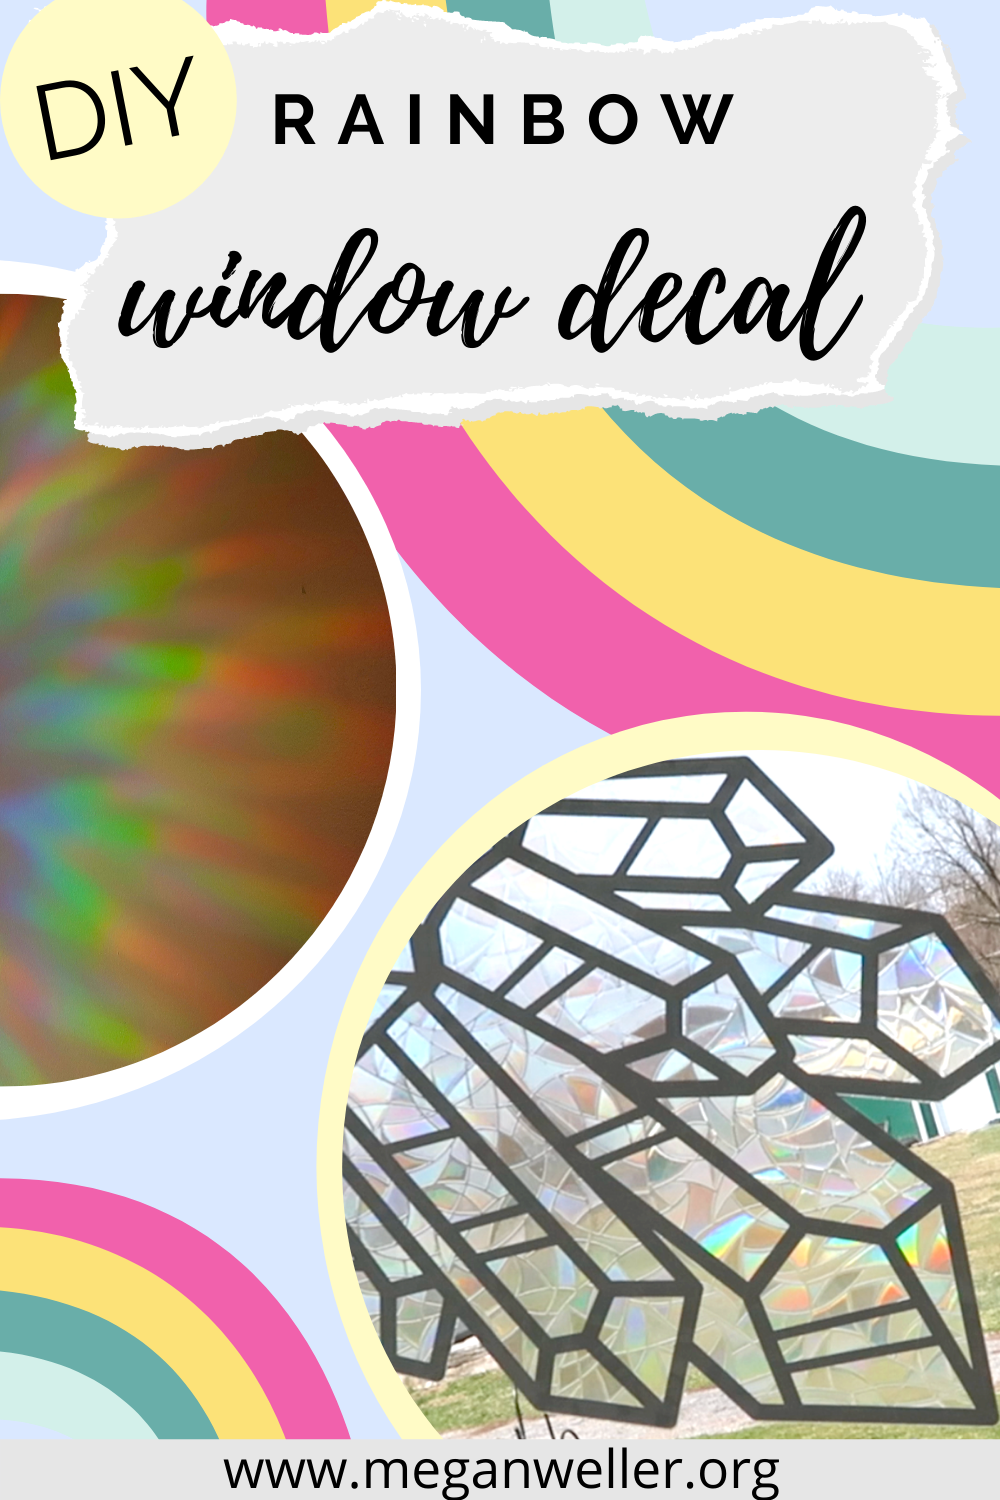 How to make a window decal using rainbow window film, removable vinyl, and a Cricut Maker.